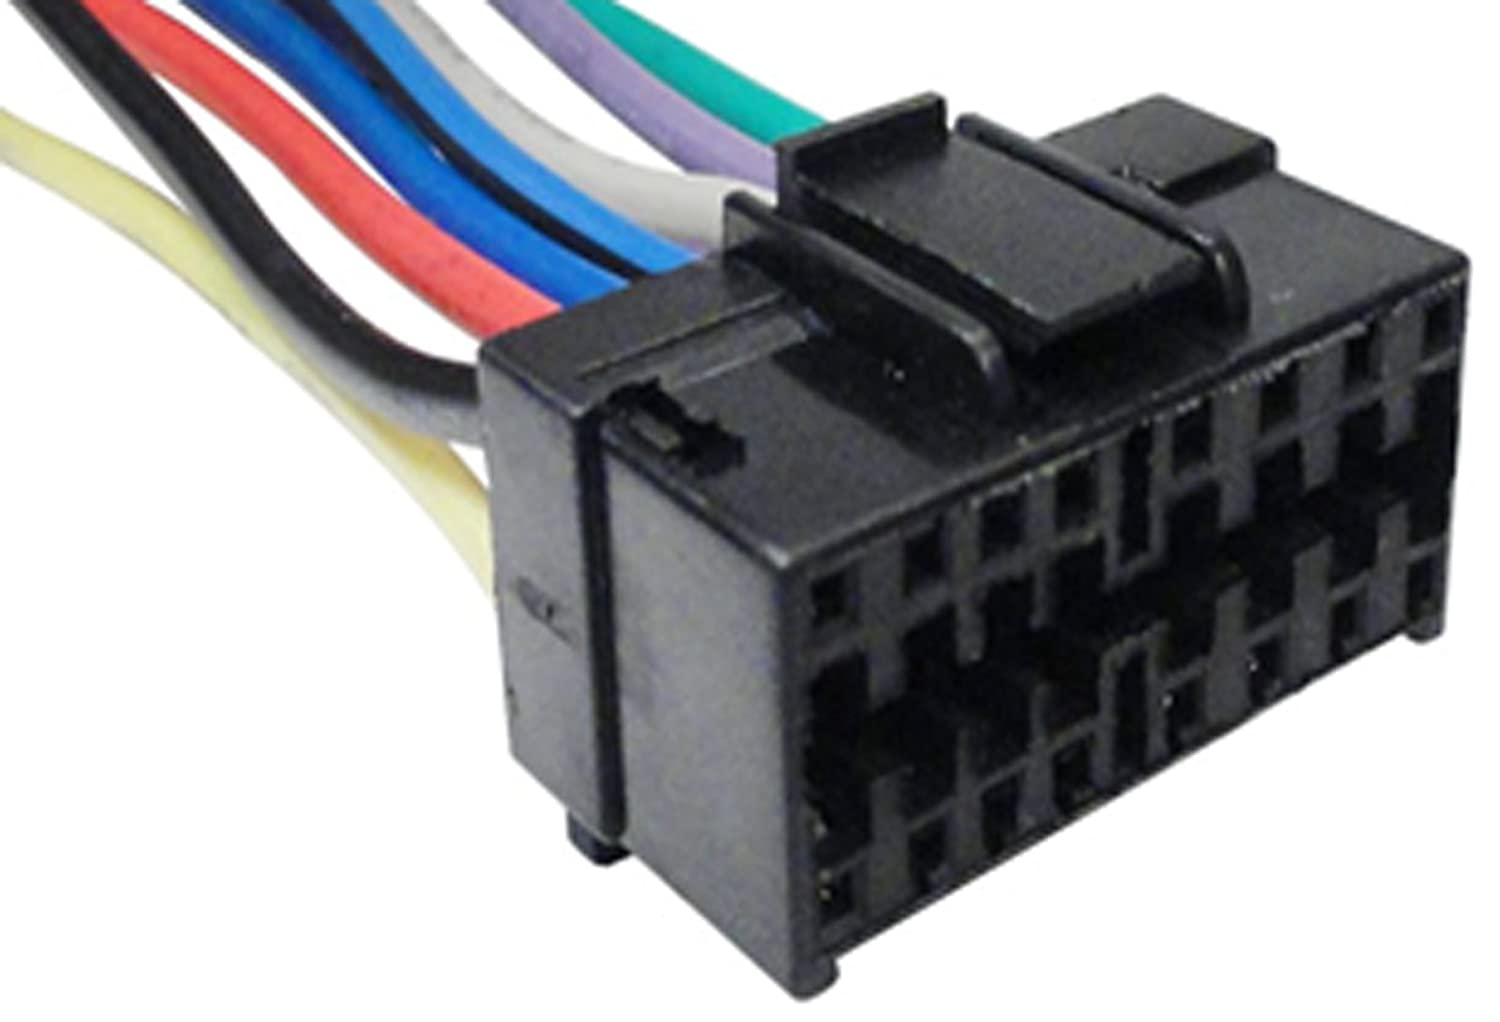 61PGr49b4wL._SL1500_ amazon com sony wiring harness 16 pin copper sy16 automotive sony wiring harness at gsmportal.co